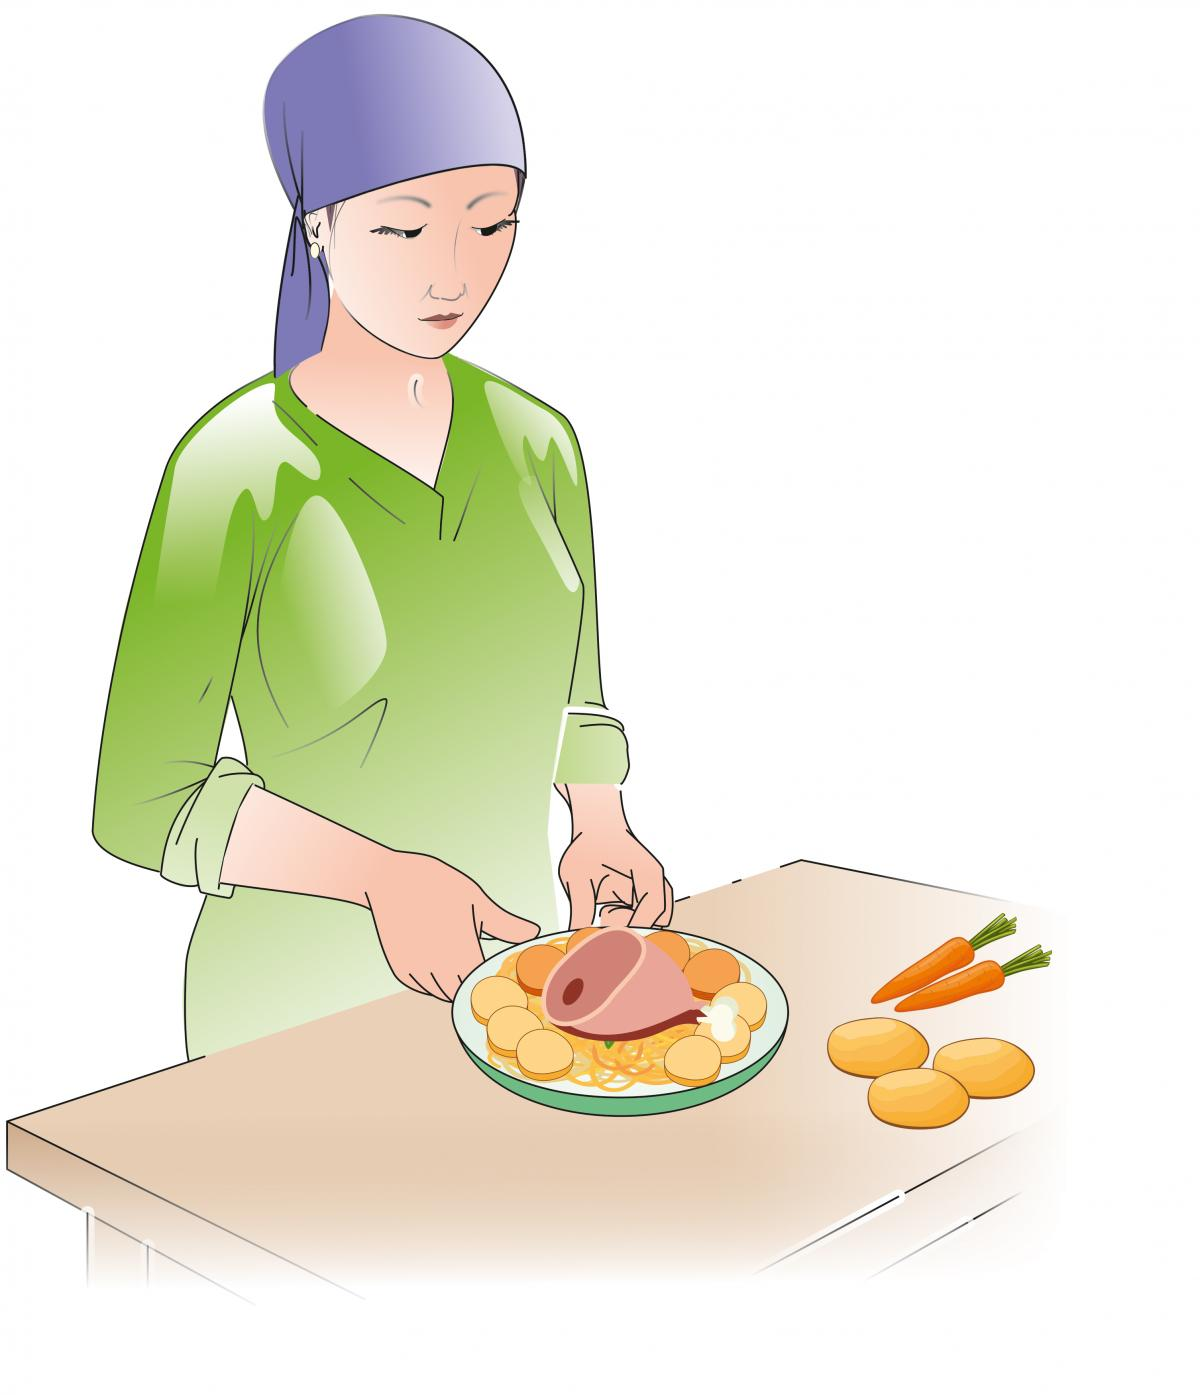 Food Practices - Woman preparing food hygienically  - 01 - Kyrgyz Republic